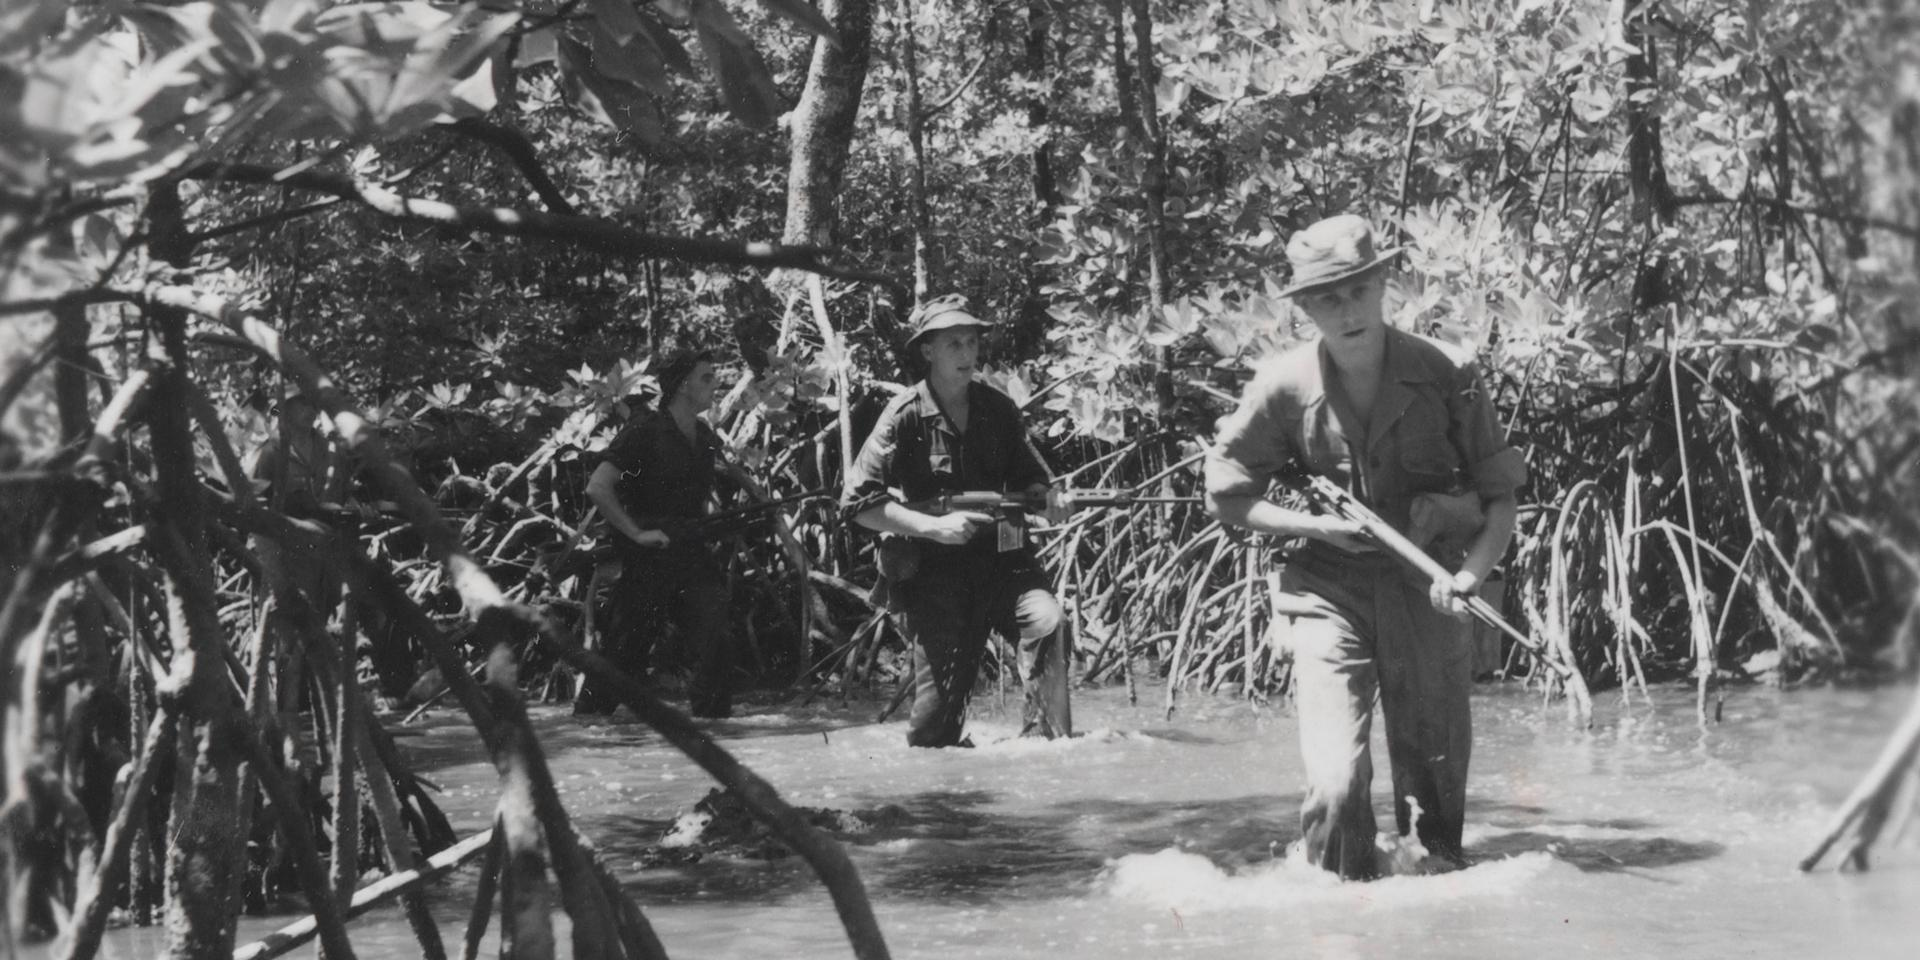 Army patrol in Malaya, 1957